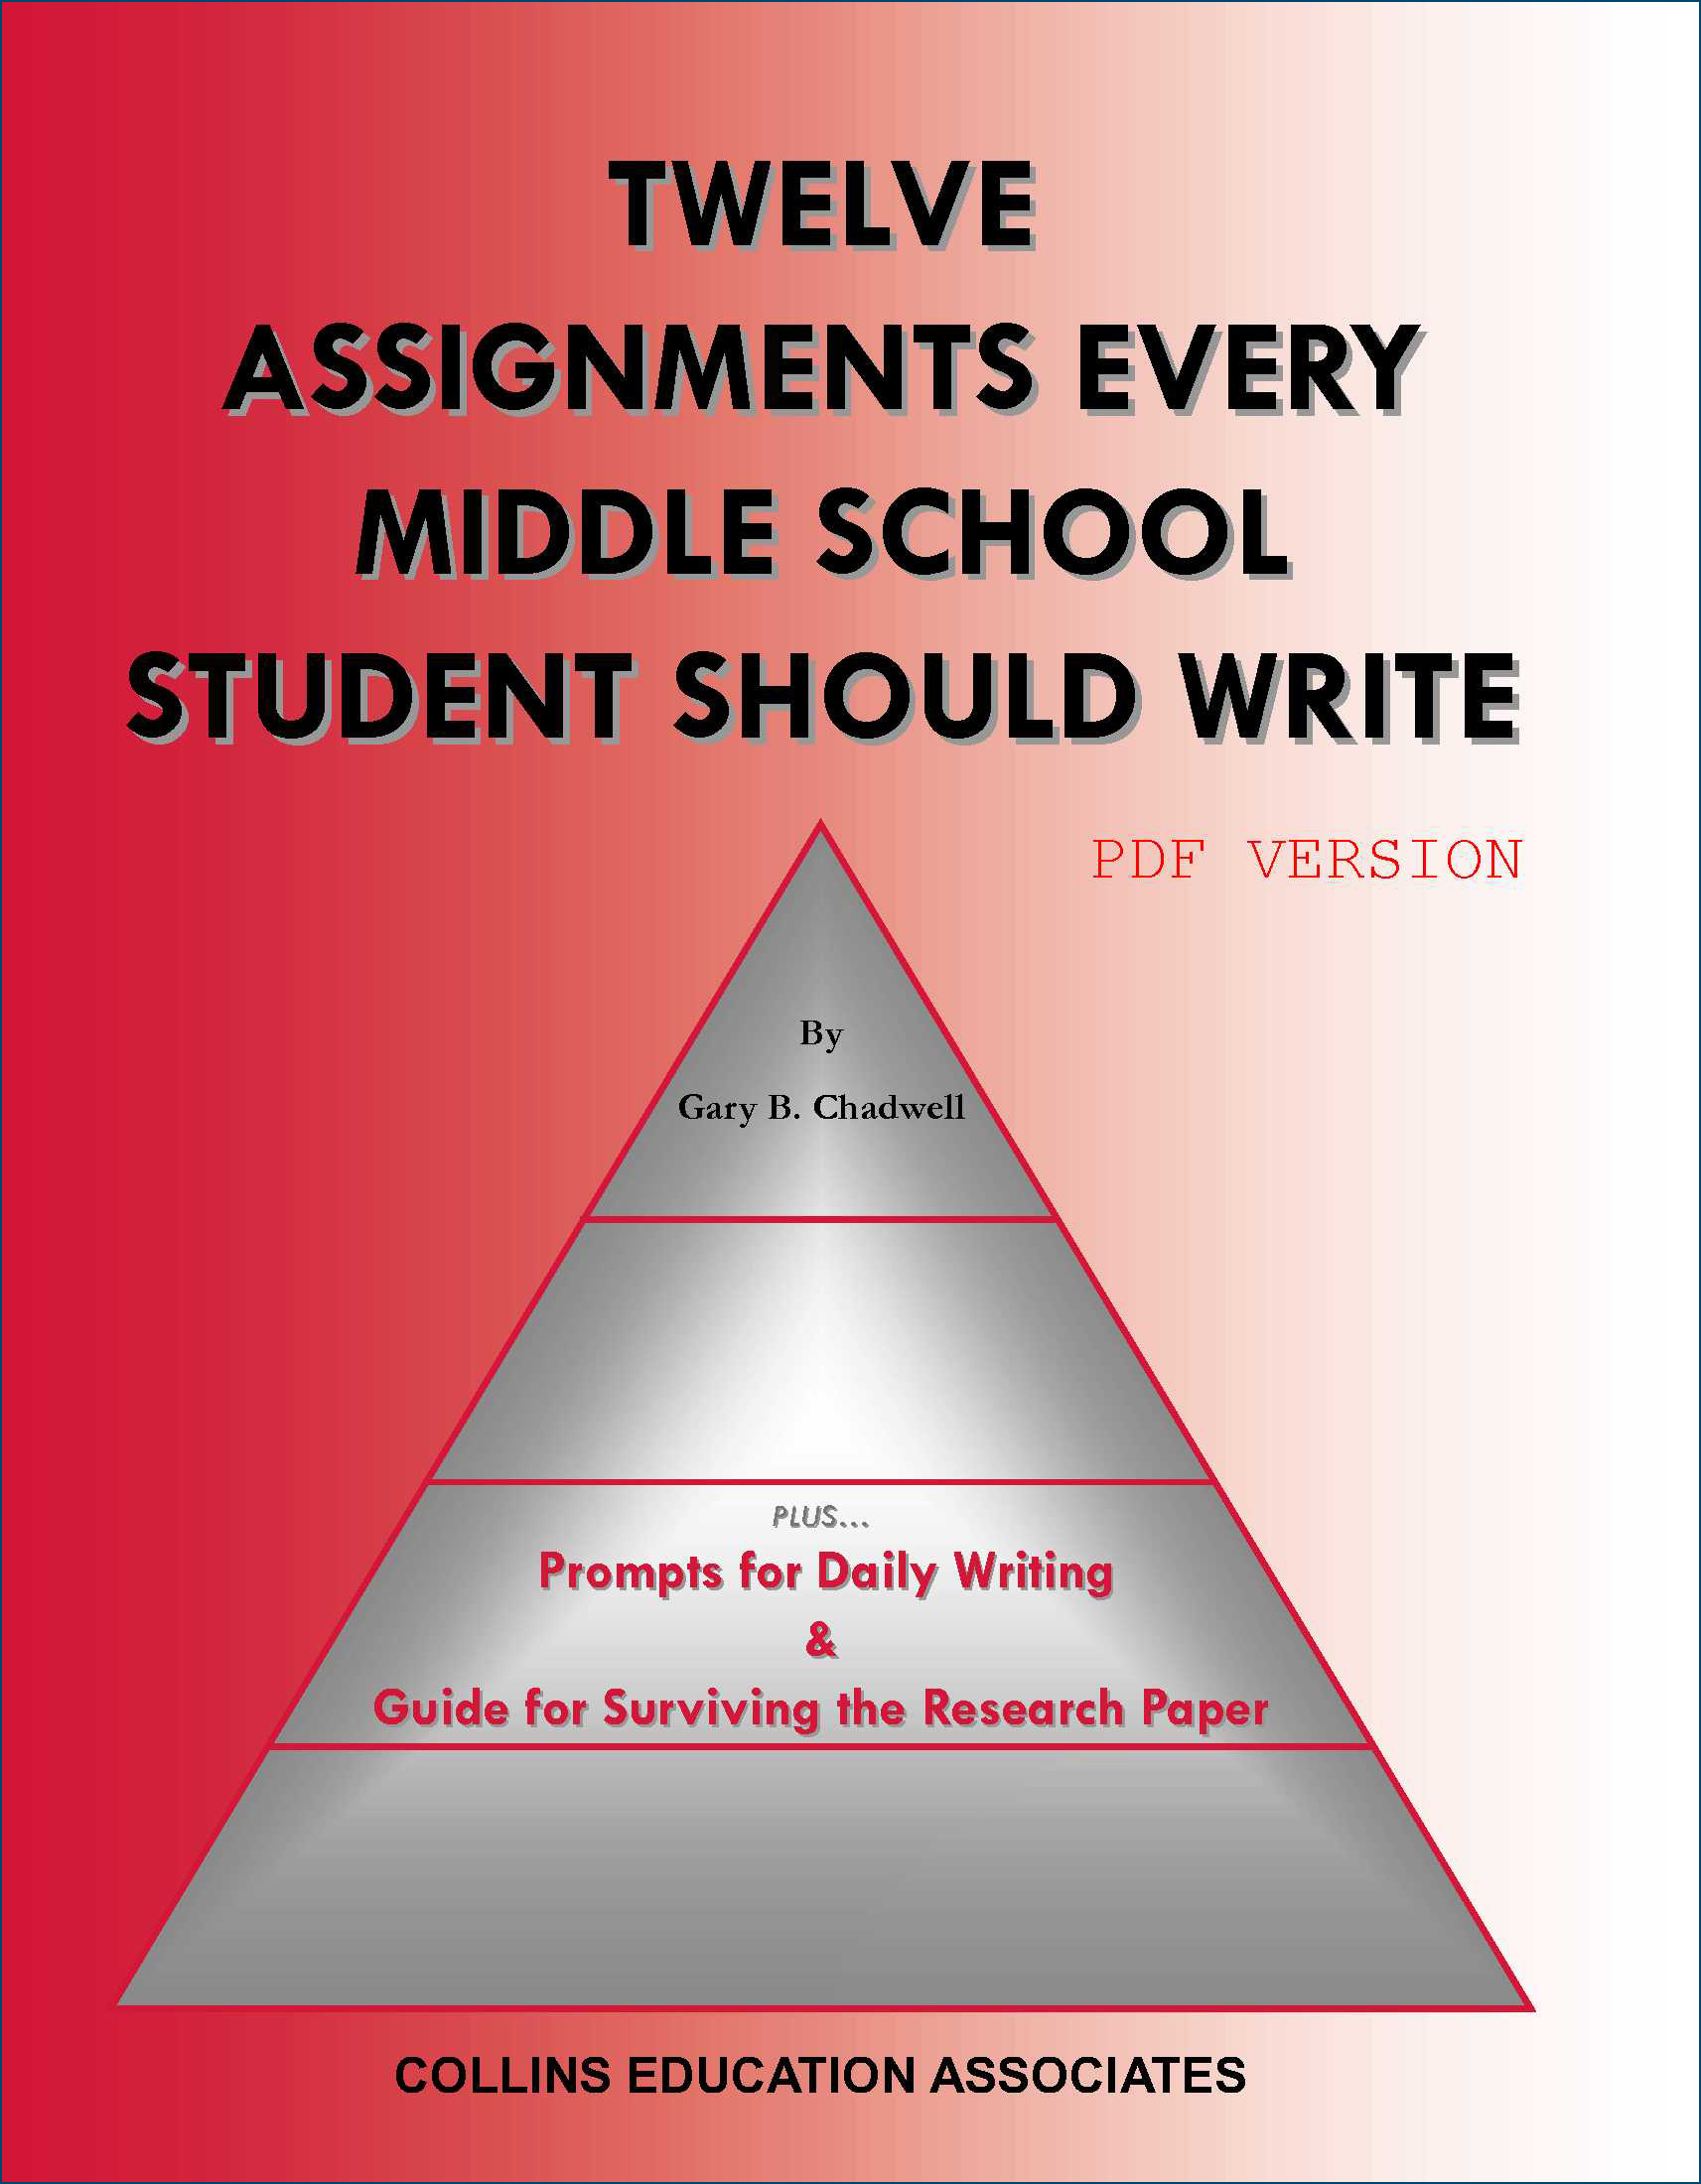 WHY RELY ON US FOR TOP-NOTCH ASSIGNMENT WRITING?